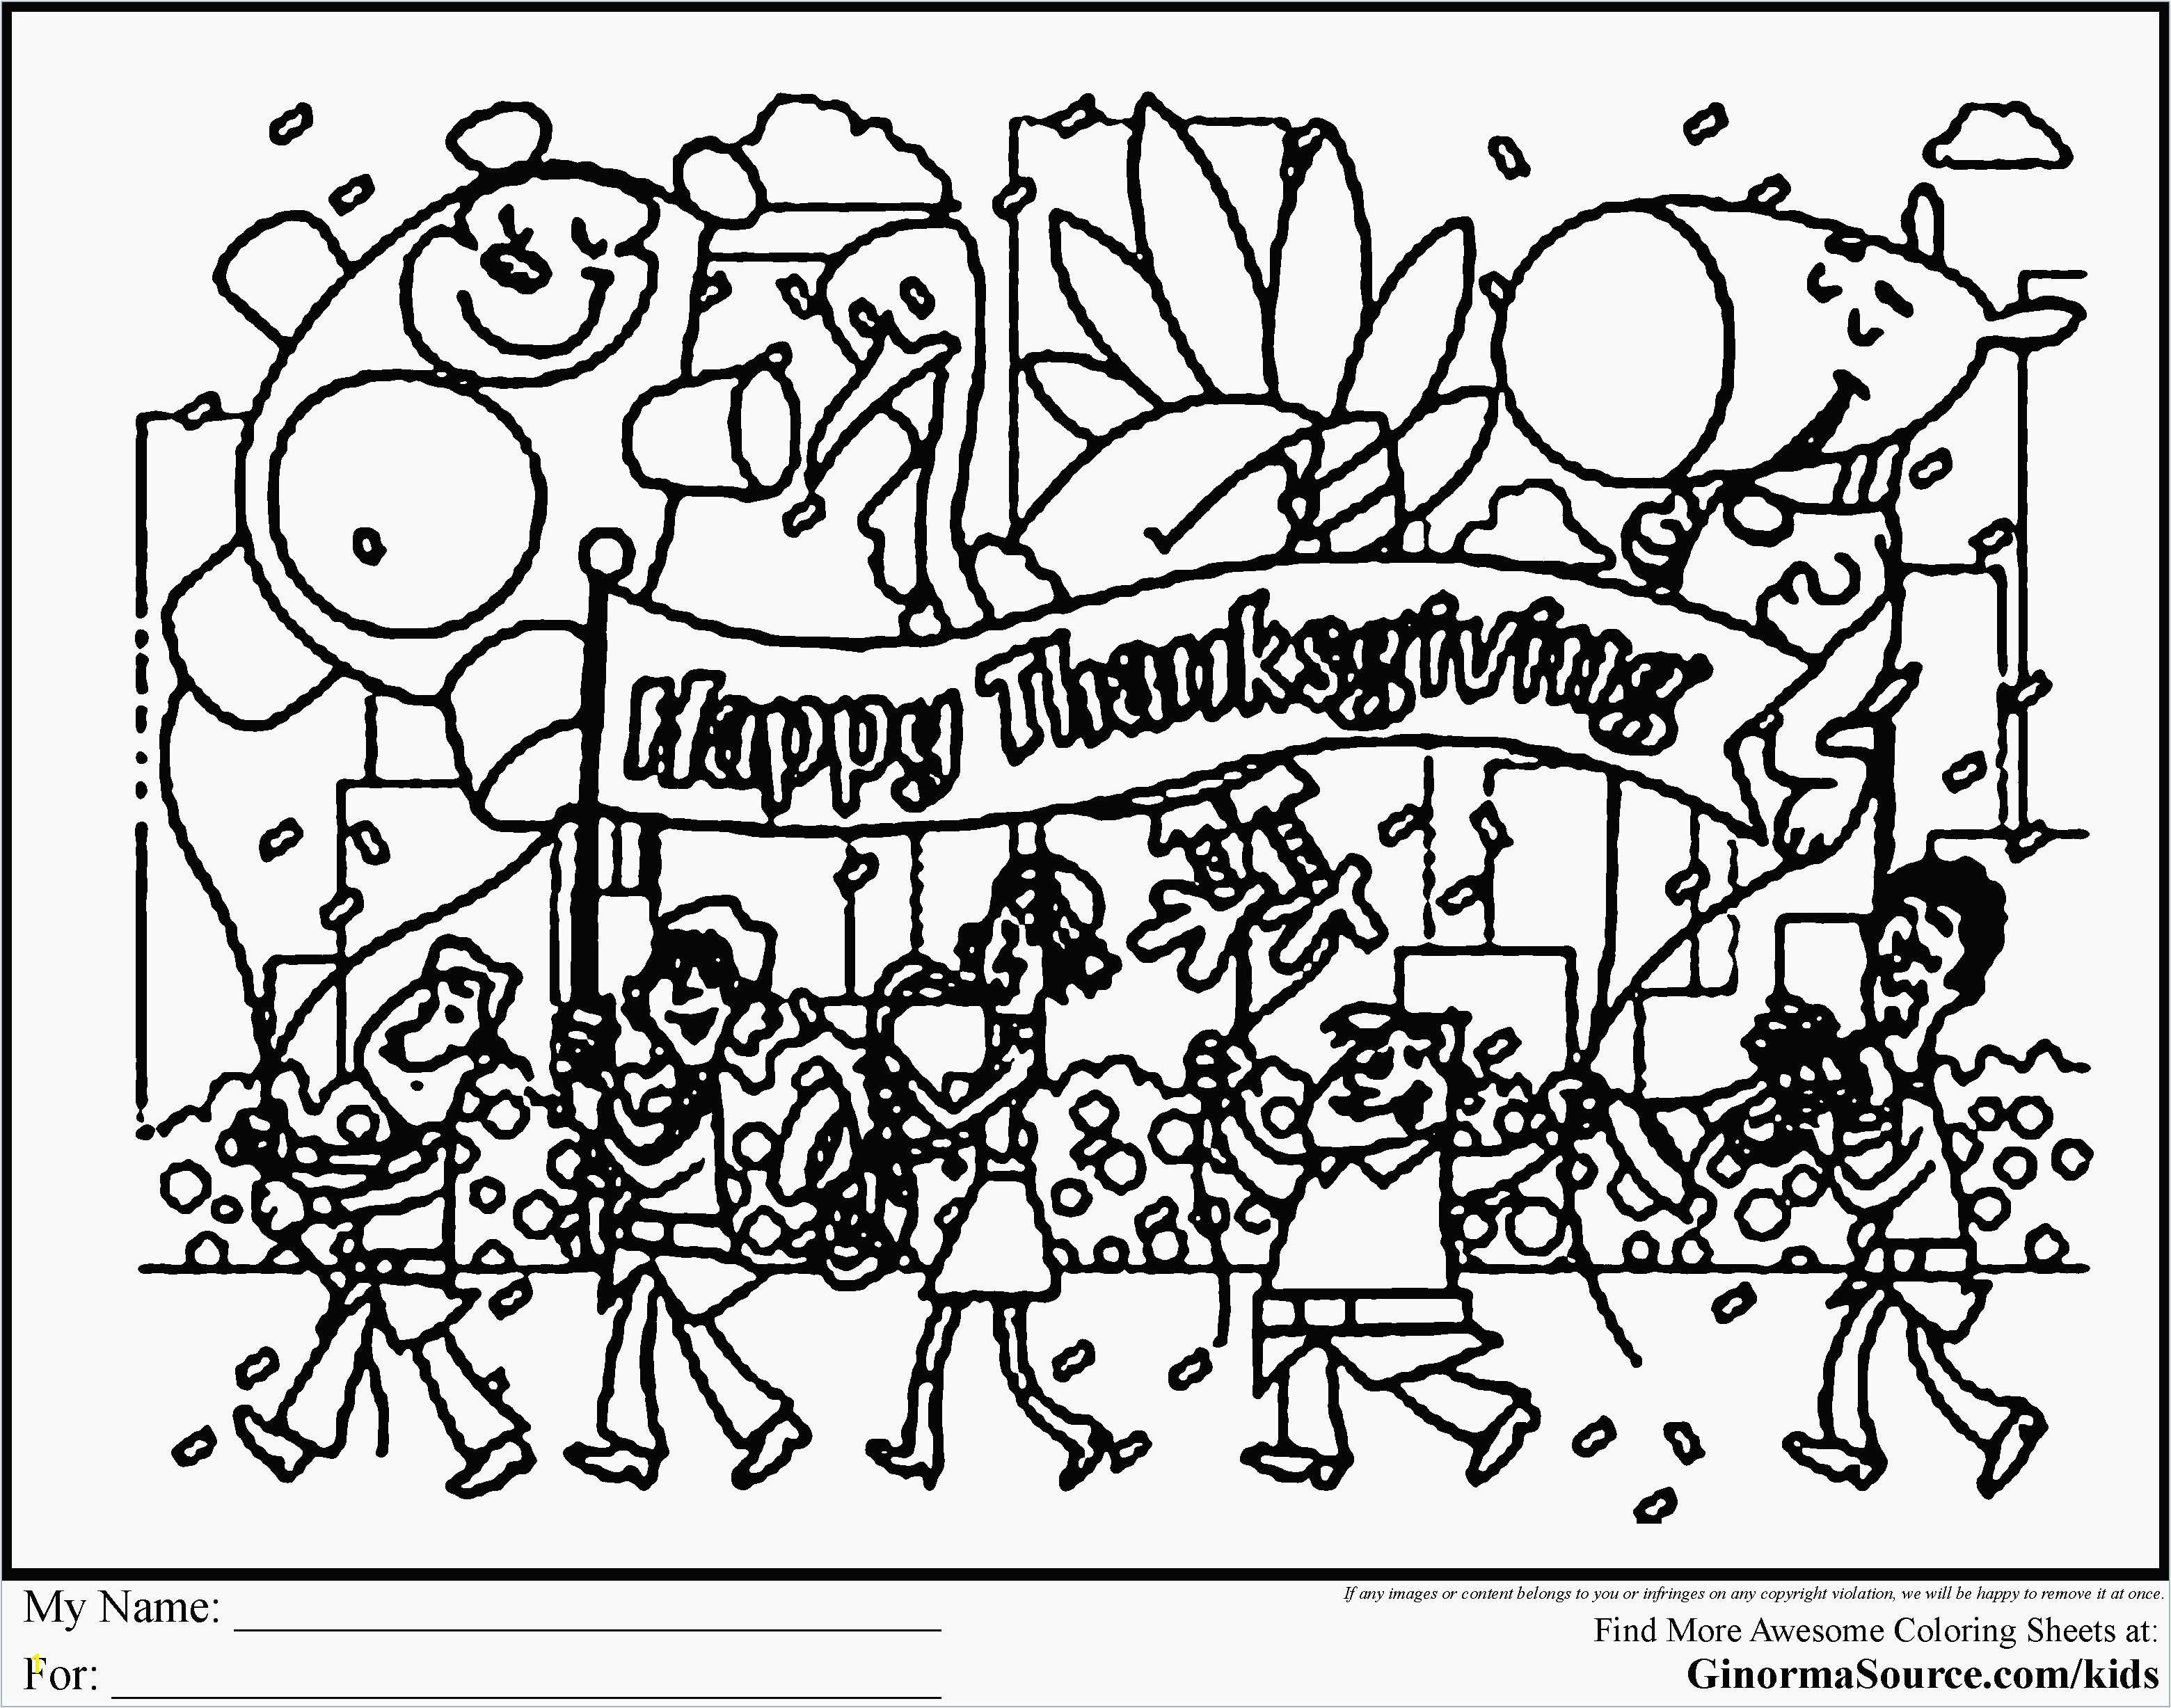 Free Printable Thanksgiving Coloring Pages Elegant Turkey Coloring Pages for Preschoolers Unique 10 Free Printable